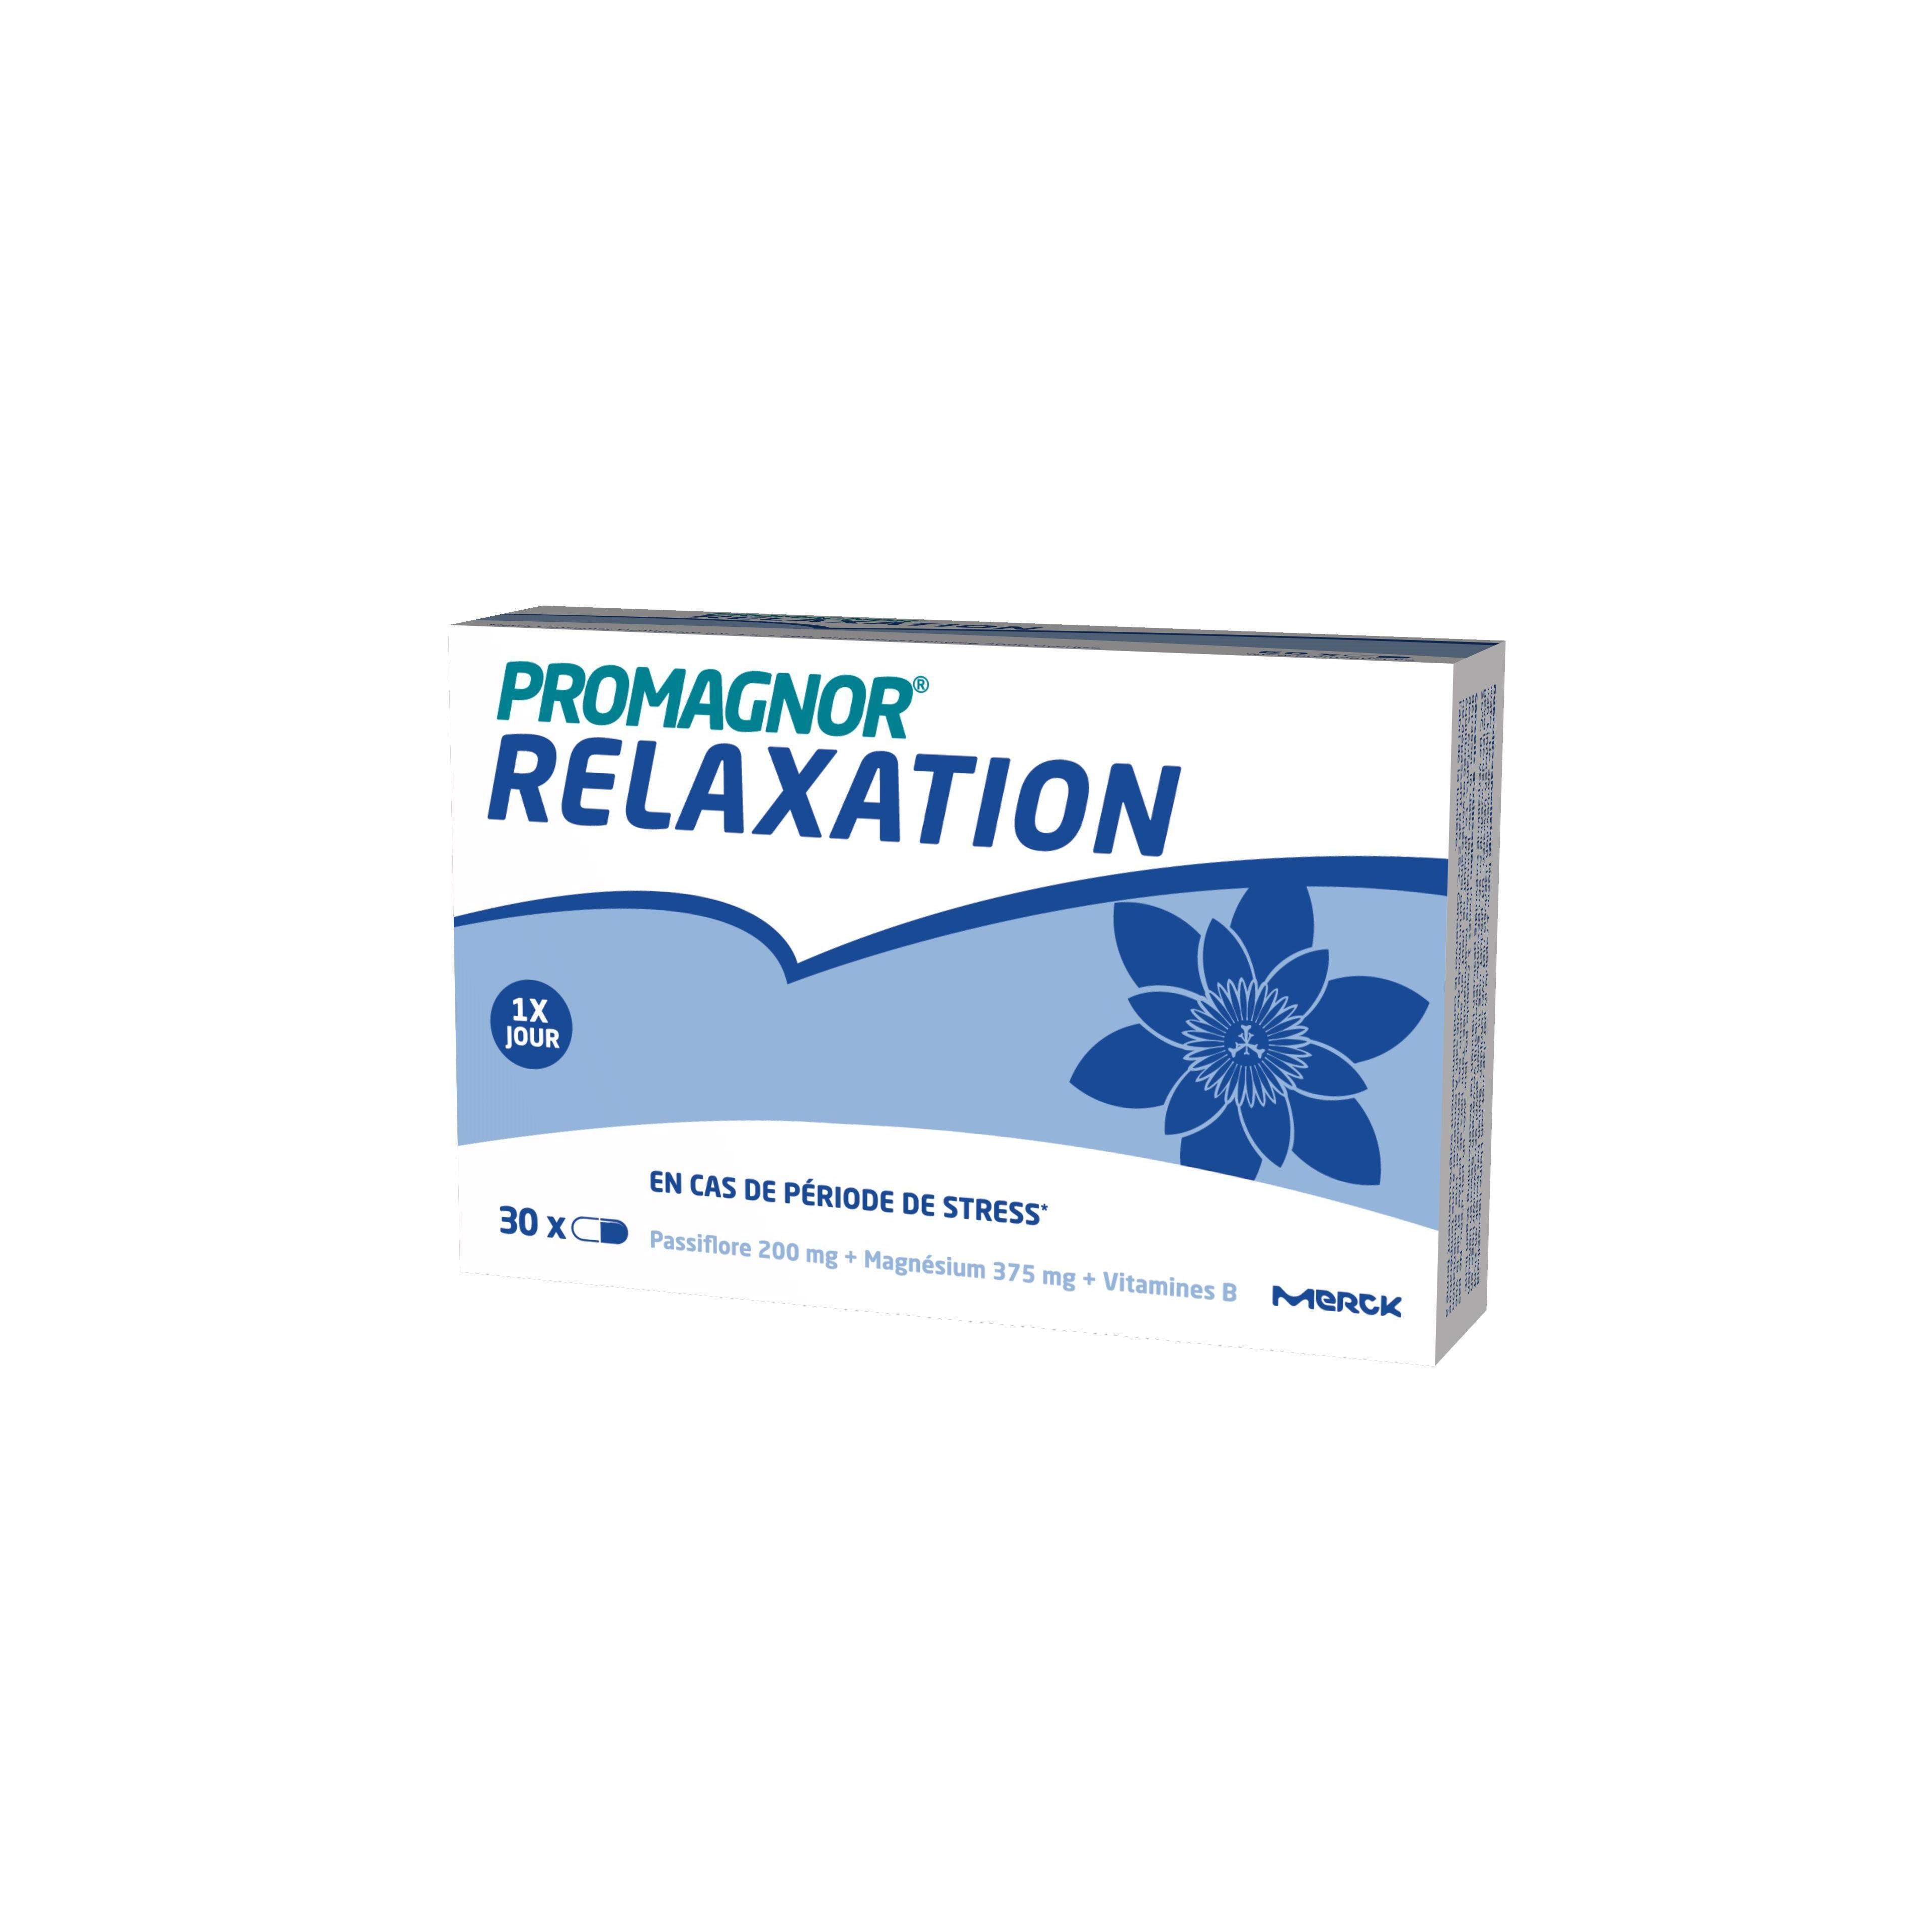 Image of Promagnor relaxation